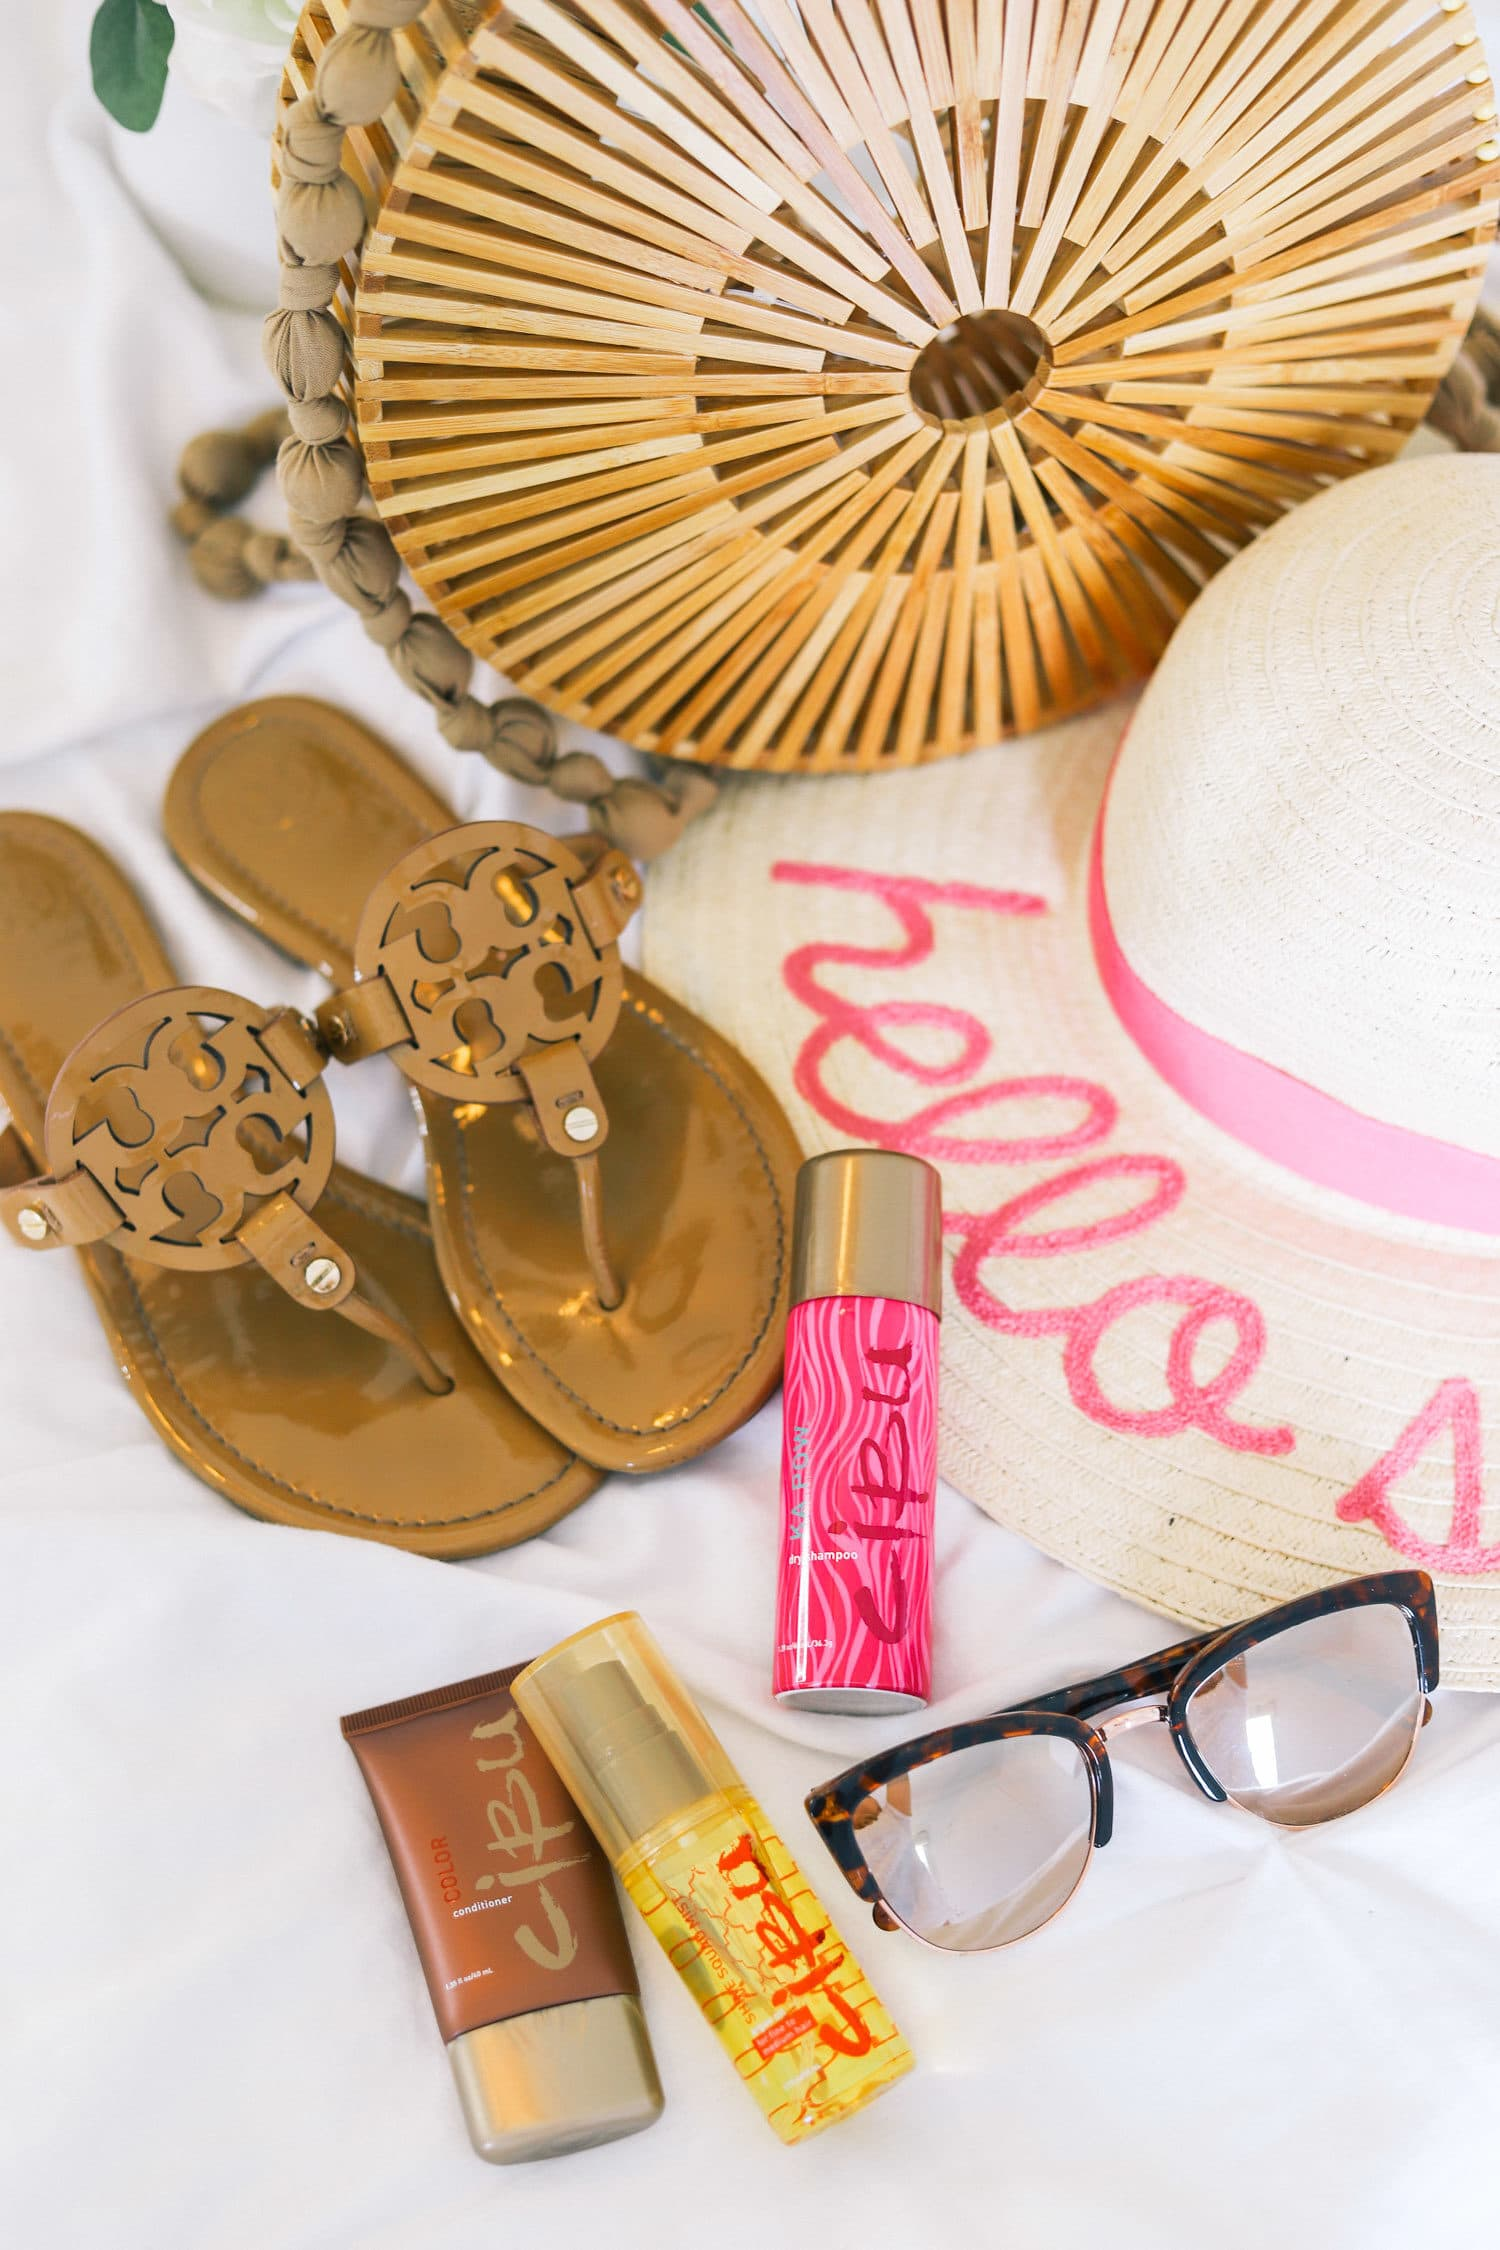 60a868a8b778f Tory Burch Miller Sandals. These sandals are absolutely worth the money –  especially the patent leather version. I ve worn mine dozens of times